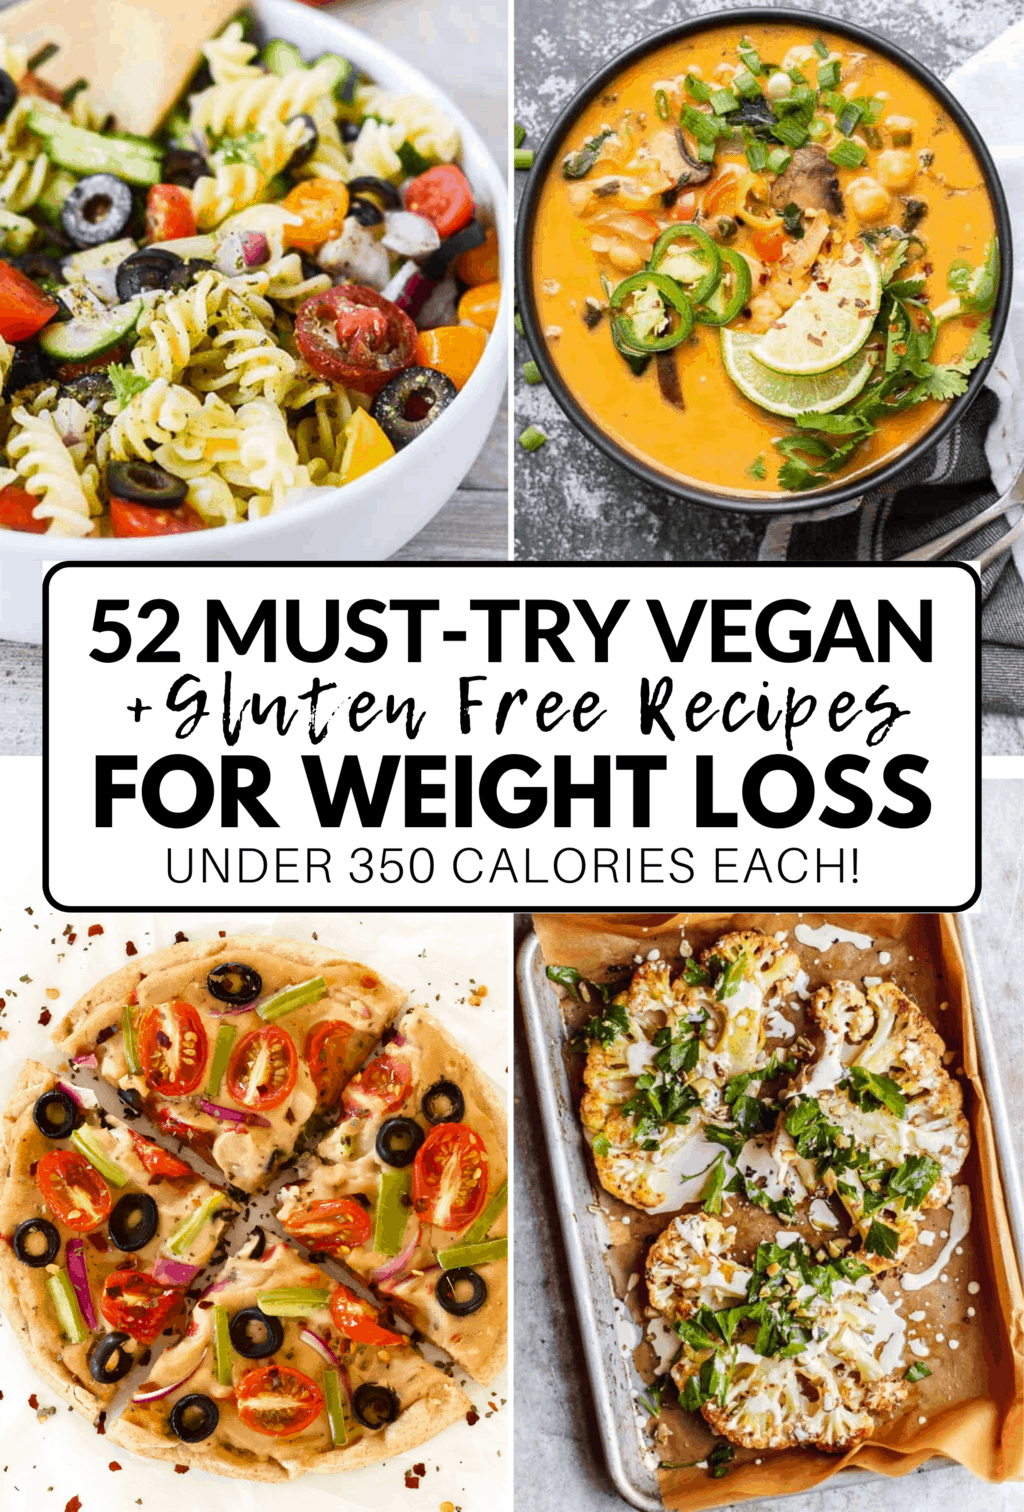 50 Amazing Vegan Meals For Weight Loss Gluten Free Low Calorie